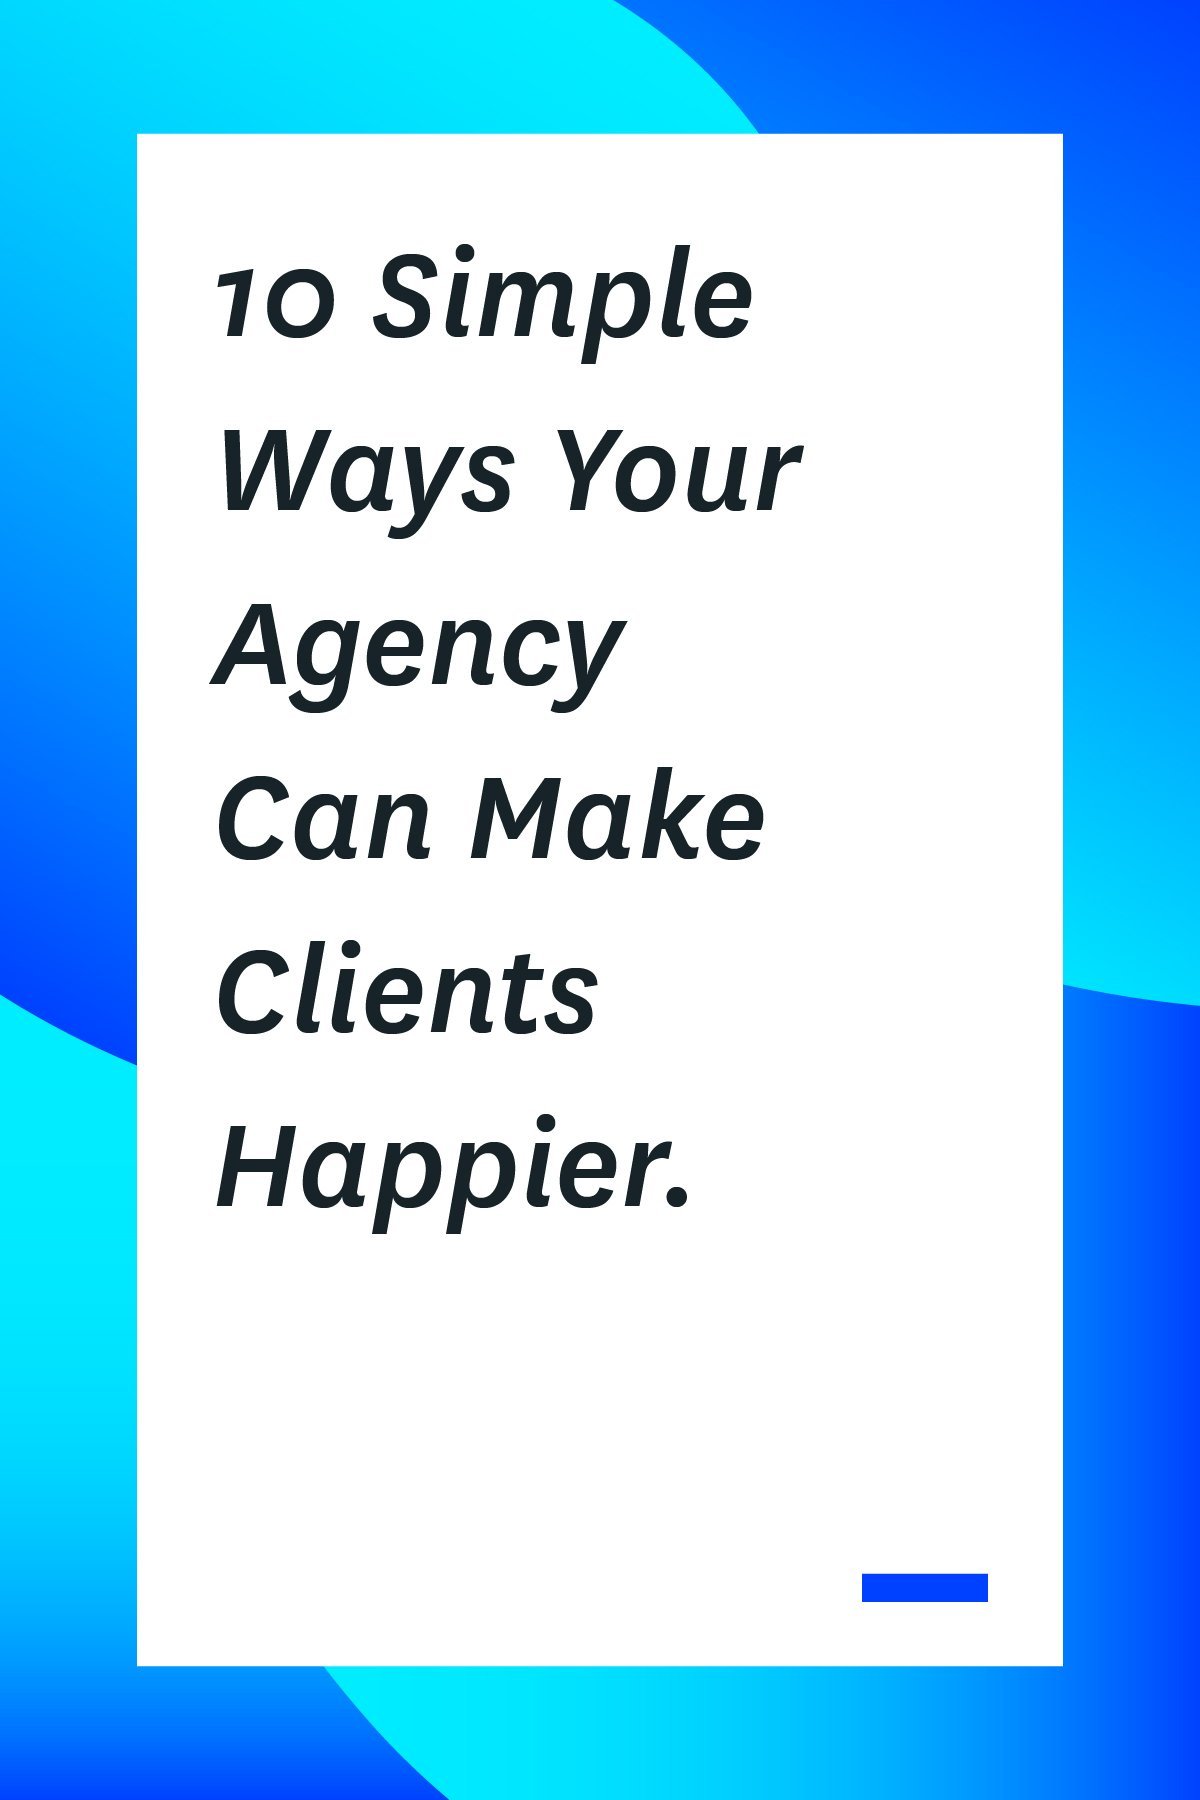 If you want more happy clients, you don't want to miss this article. Here are 10 simple ways to build strong client relationships so your business will flourish.